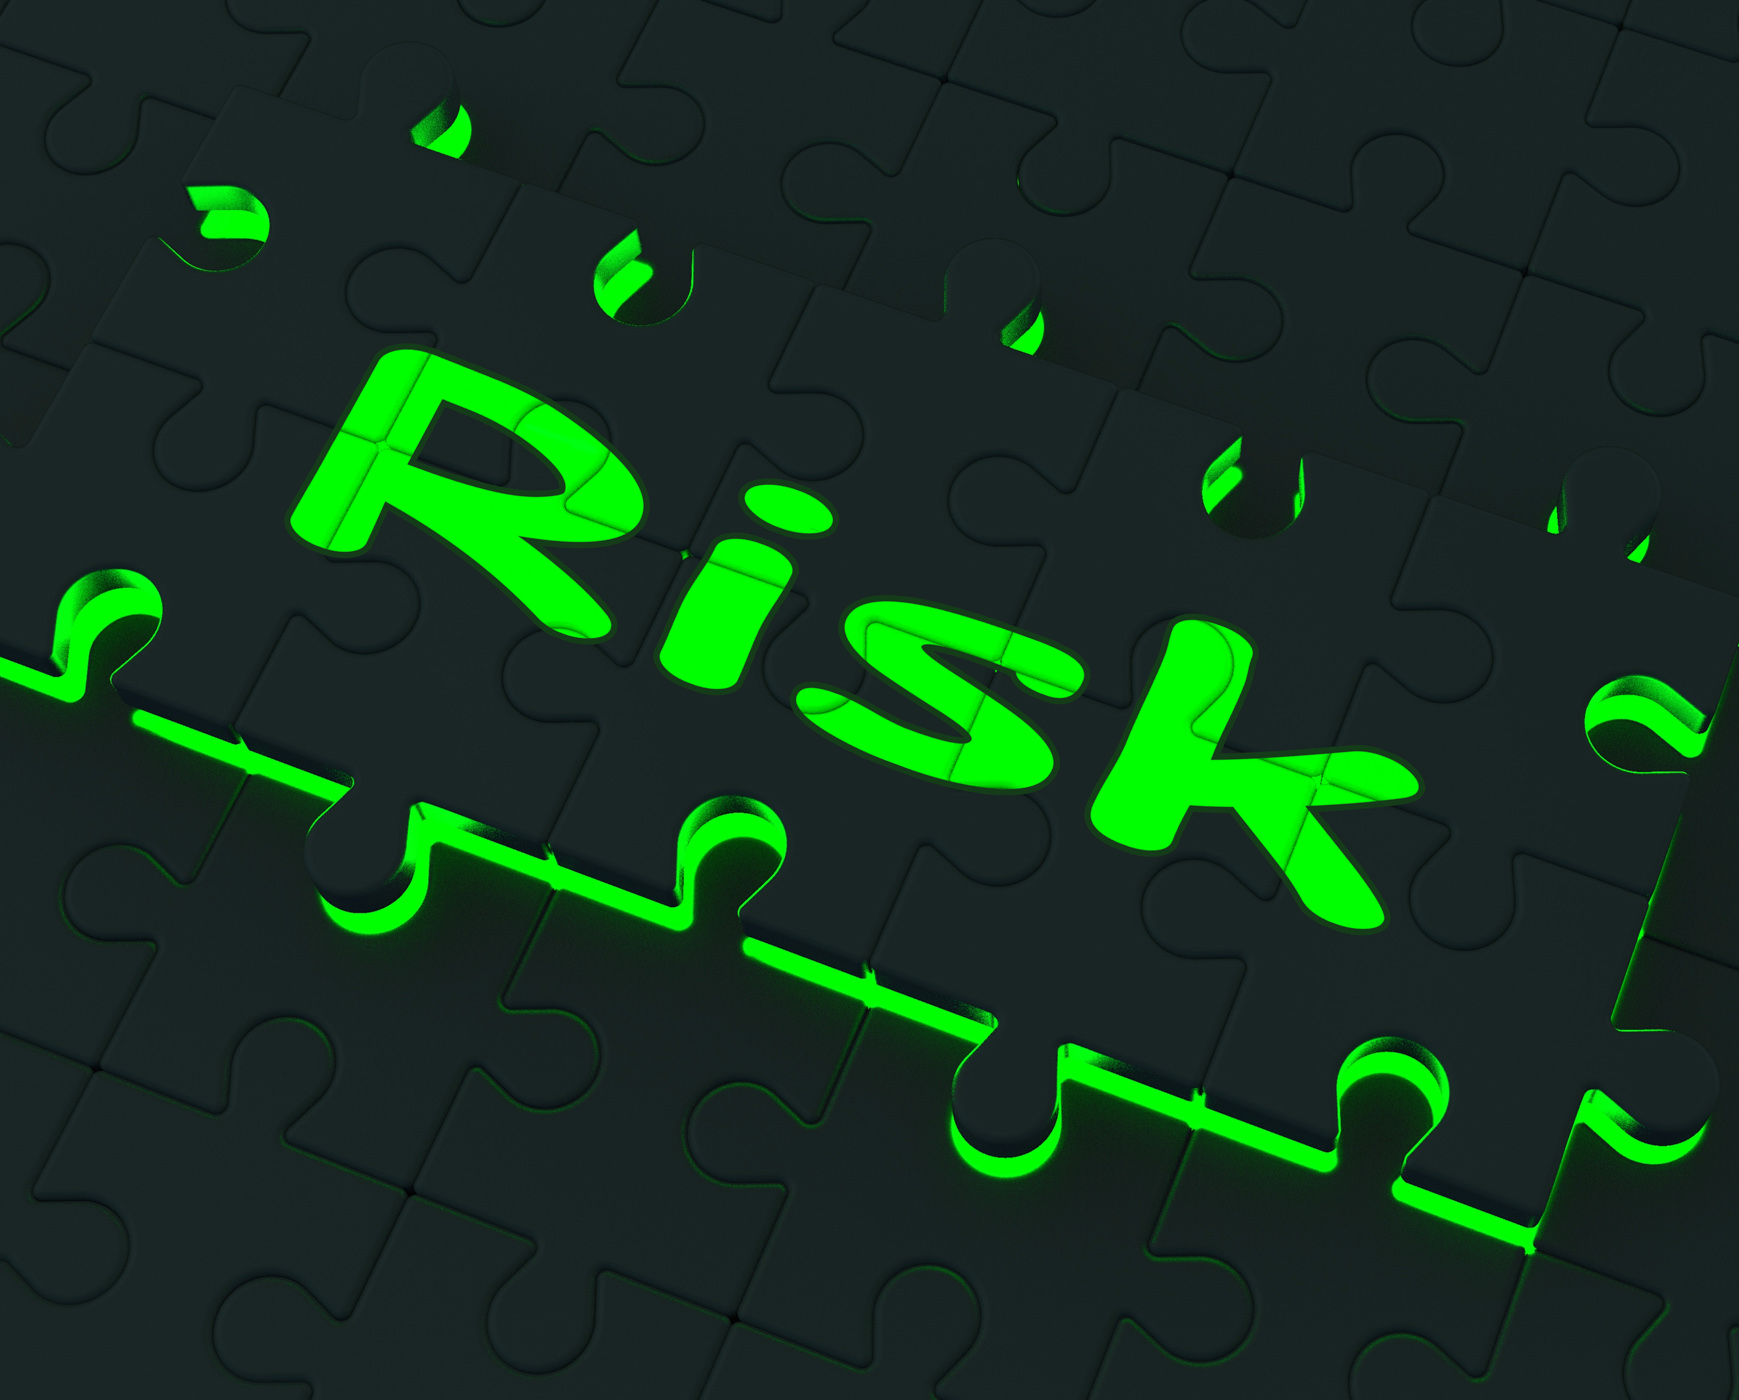 Risk puzzle shows danger and unsafe photo